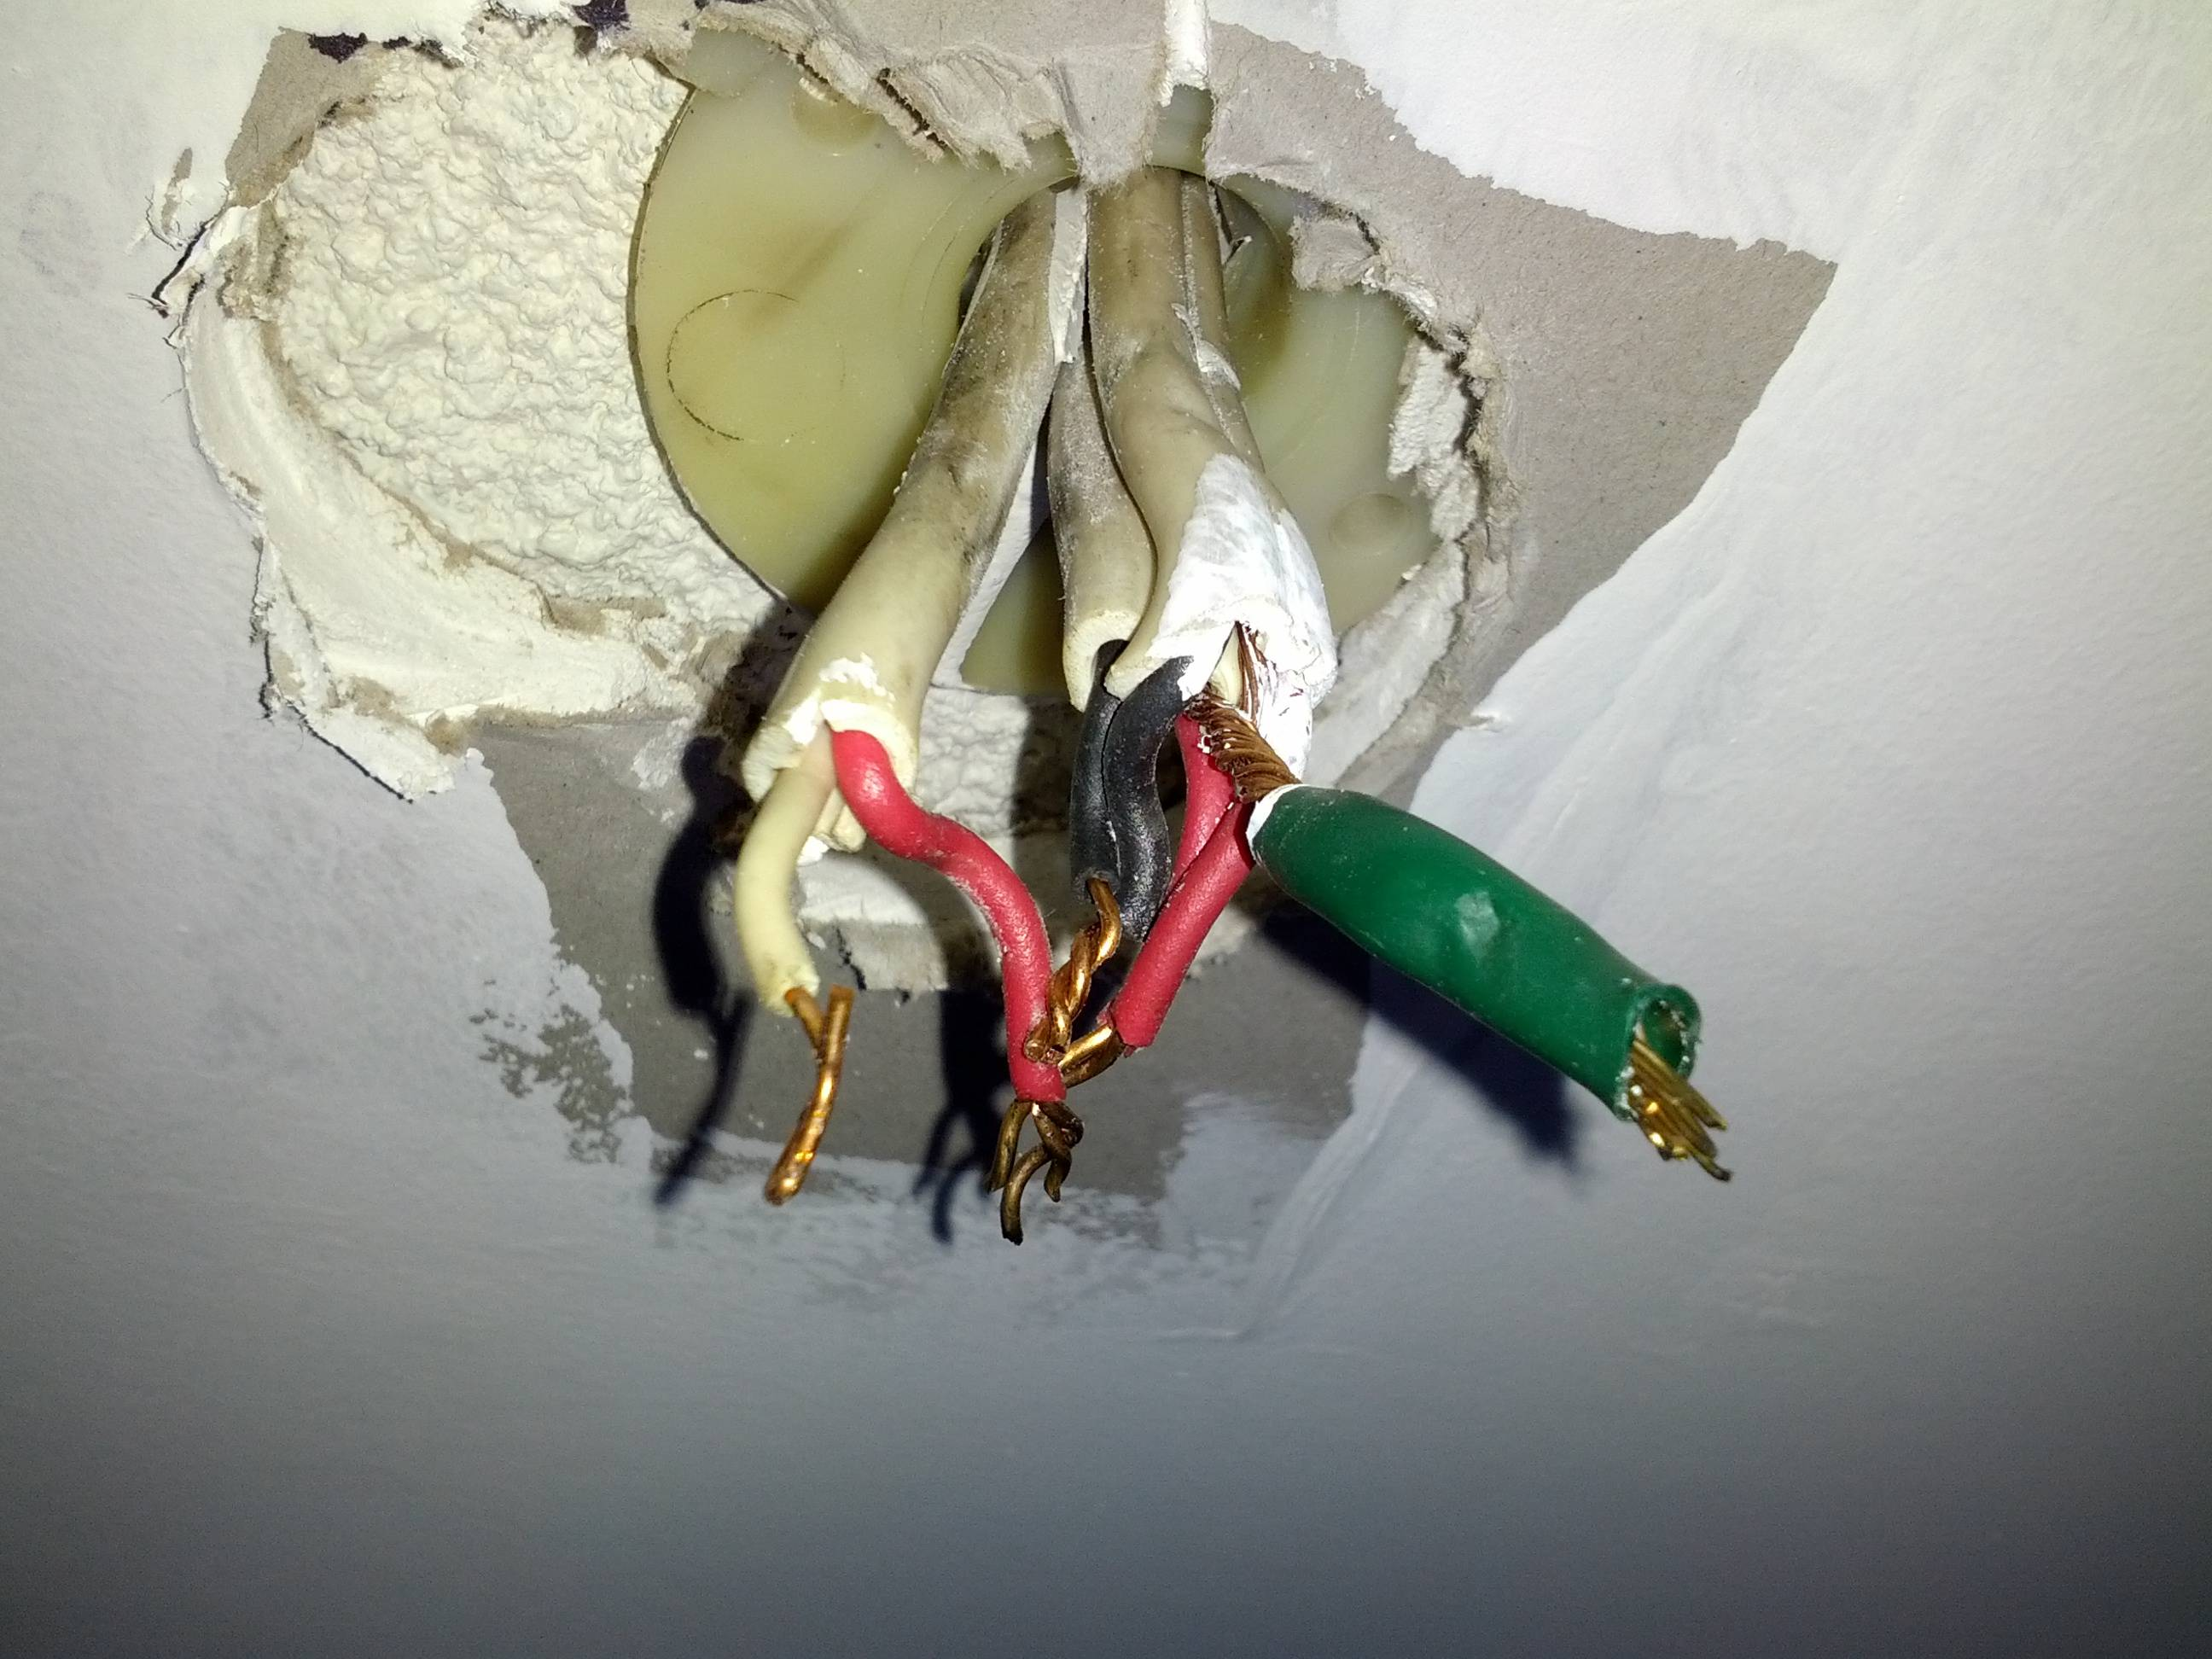 Wiring A House Light Australia